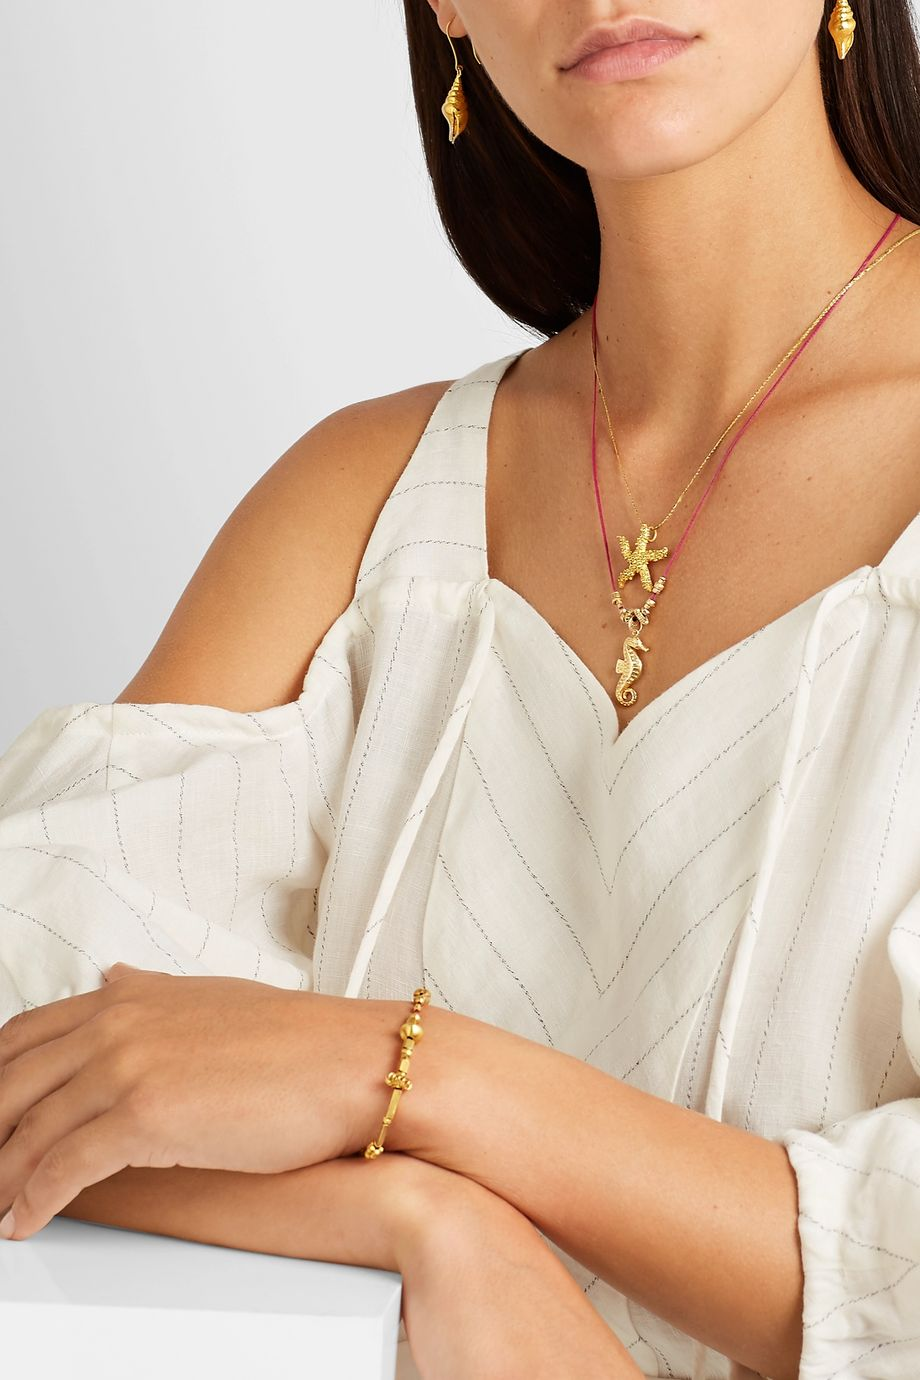 Pippa Small + NET SUSTAIN 18-karat gold and cord necklace